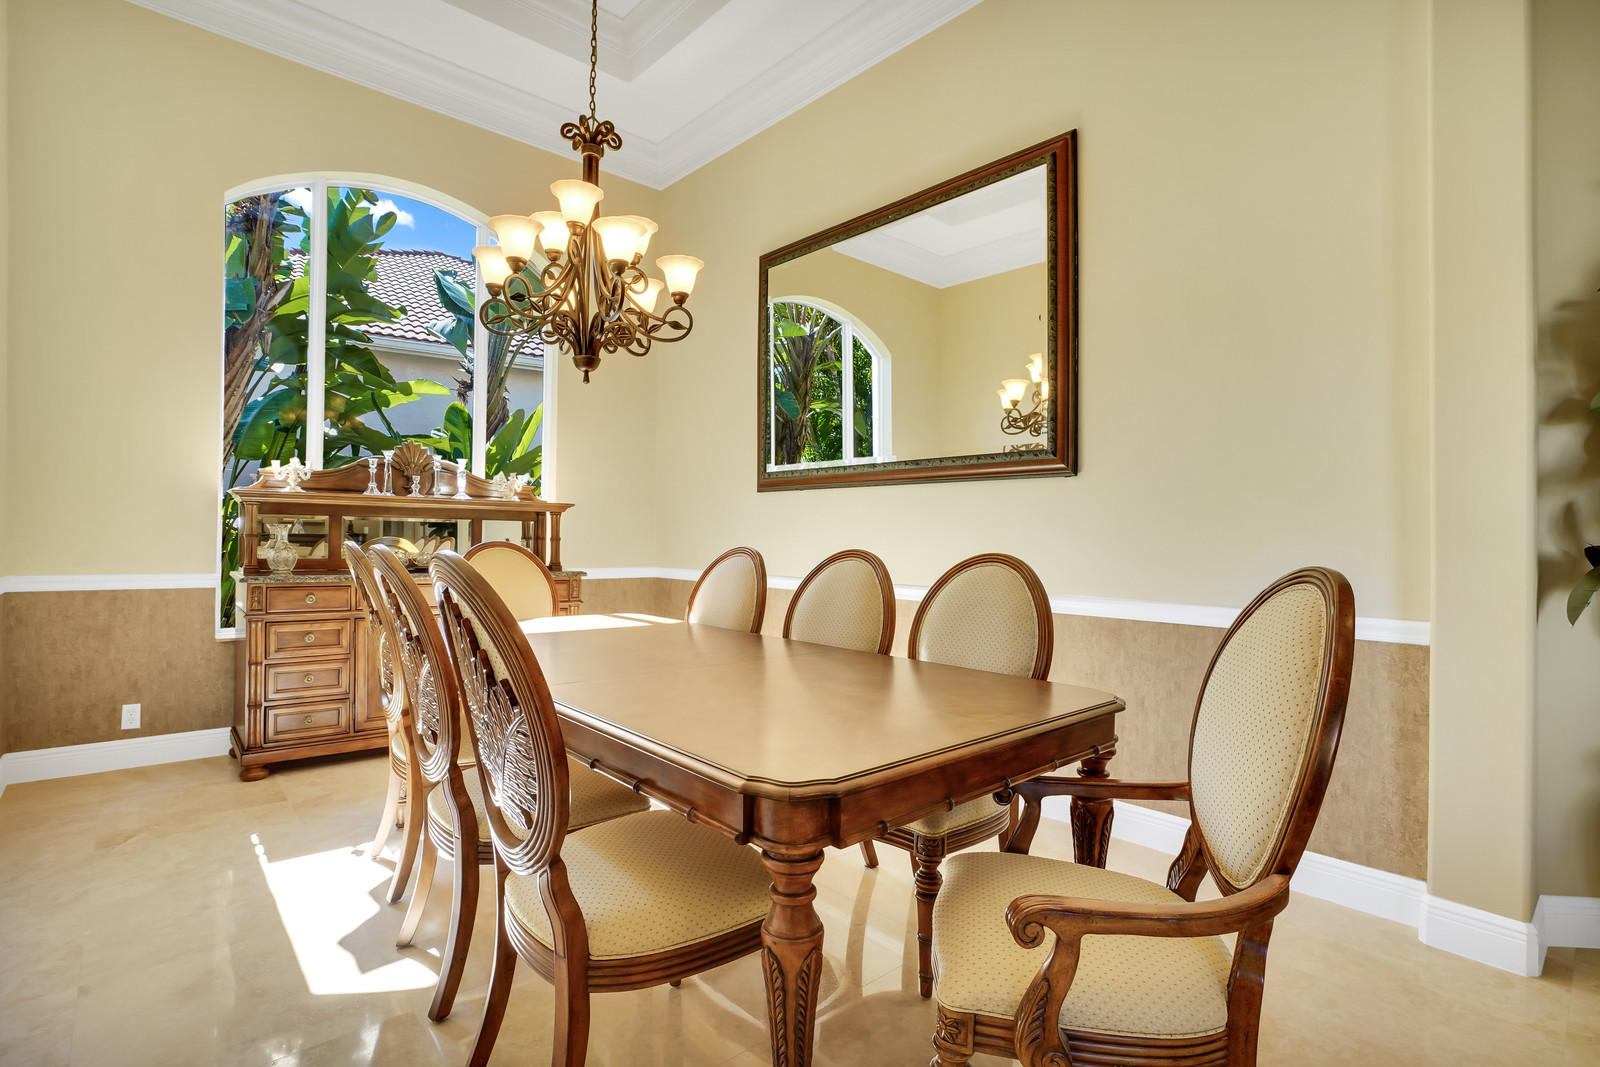 IBIS WEST PALM BEACH REAL ESTATE